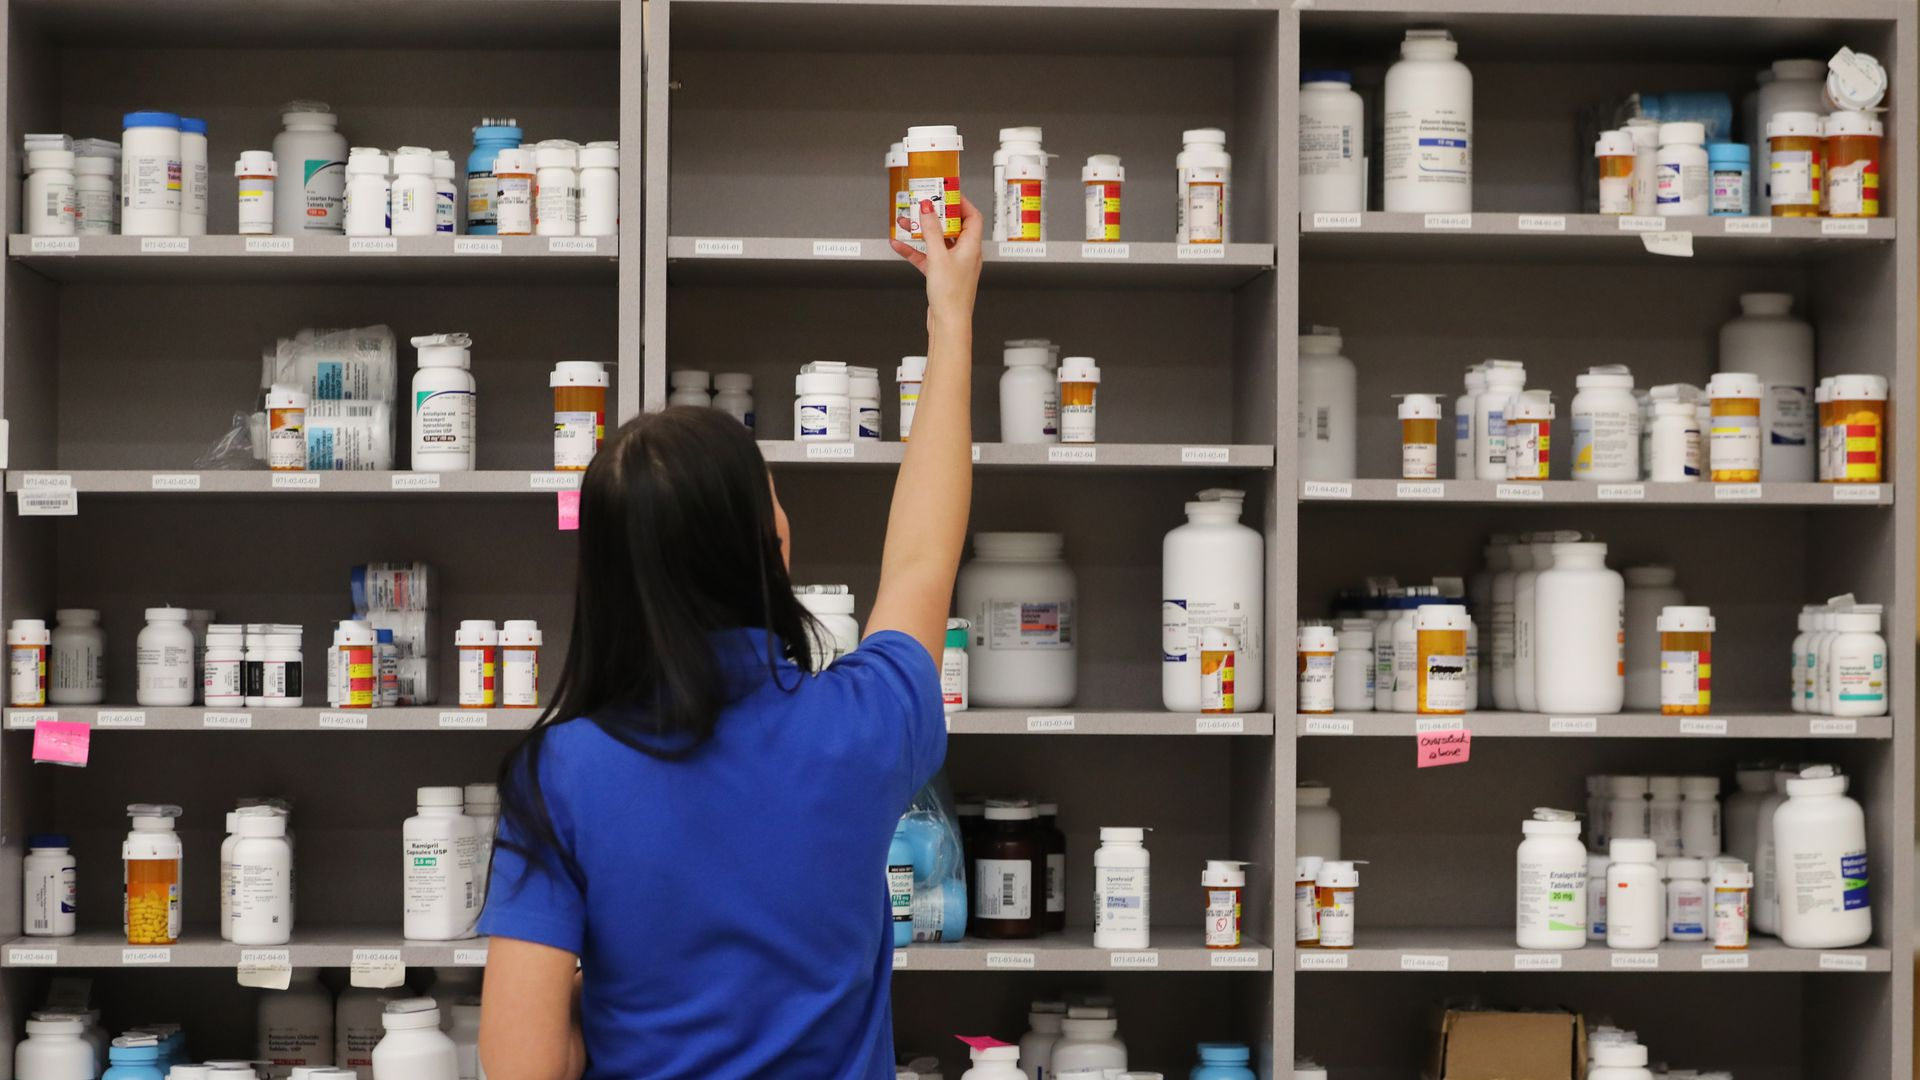 A pharmacist reaches for a prescription drug bottle in a pharmacy.